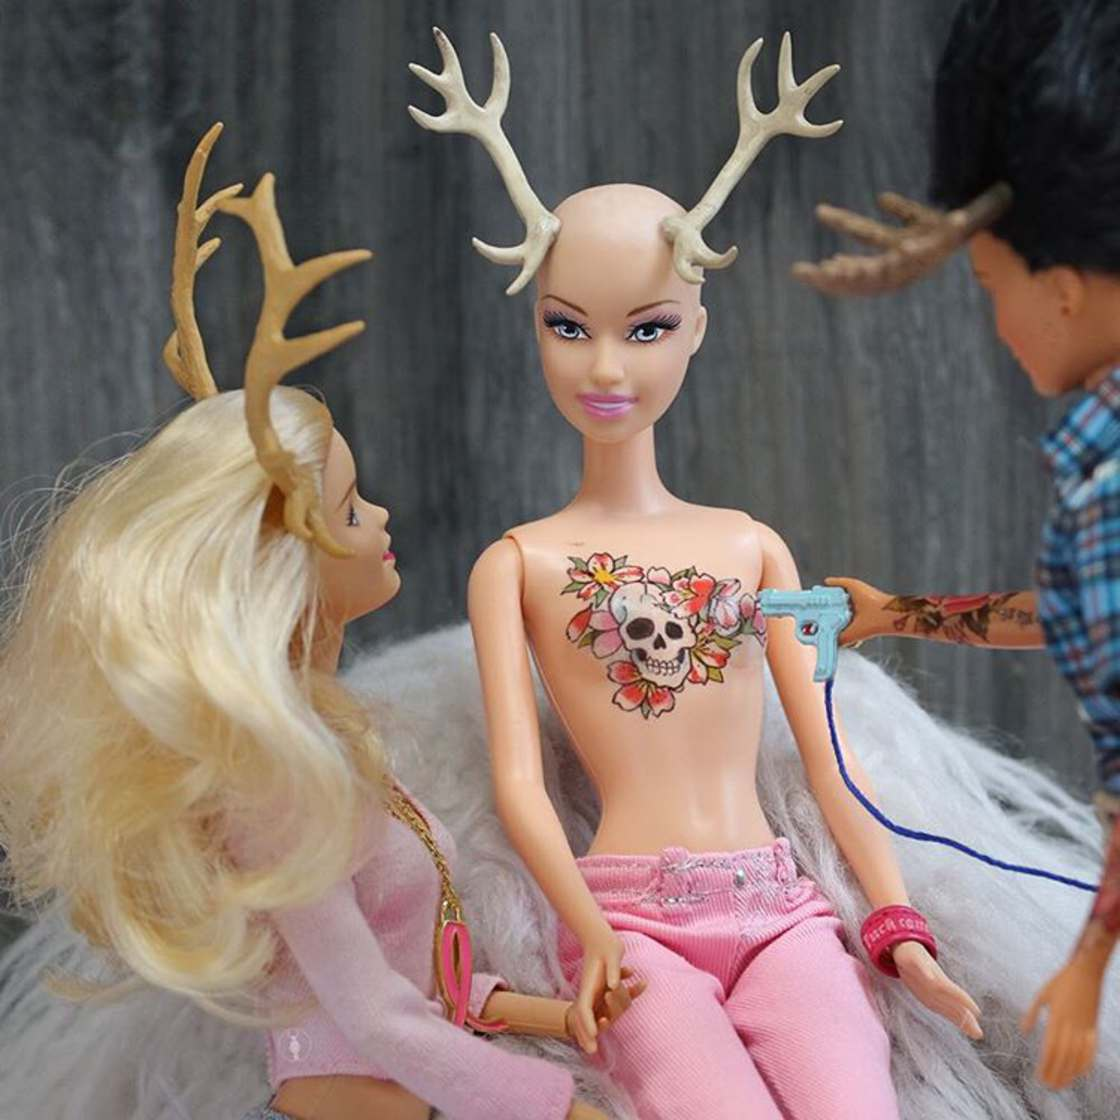 Trophy Wife Barbie - The twisted life of a Barbie on Instagram